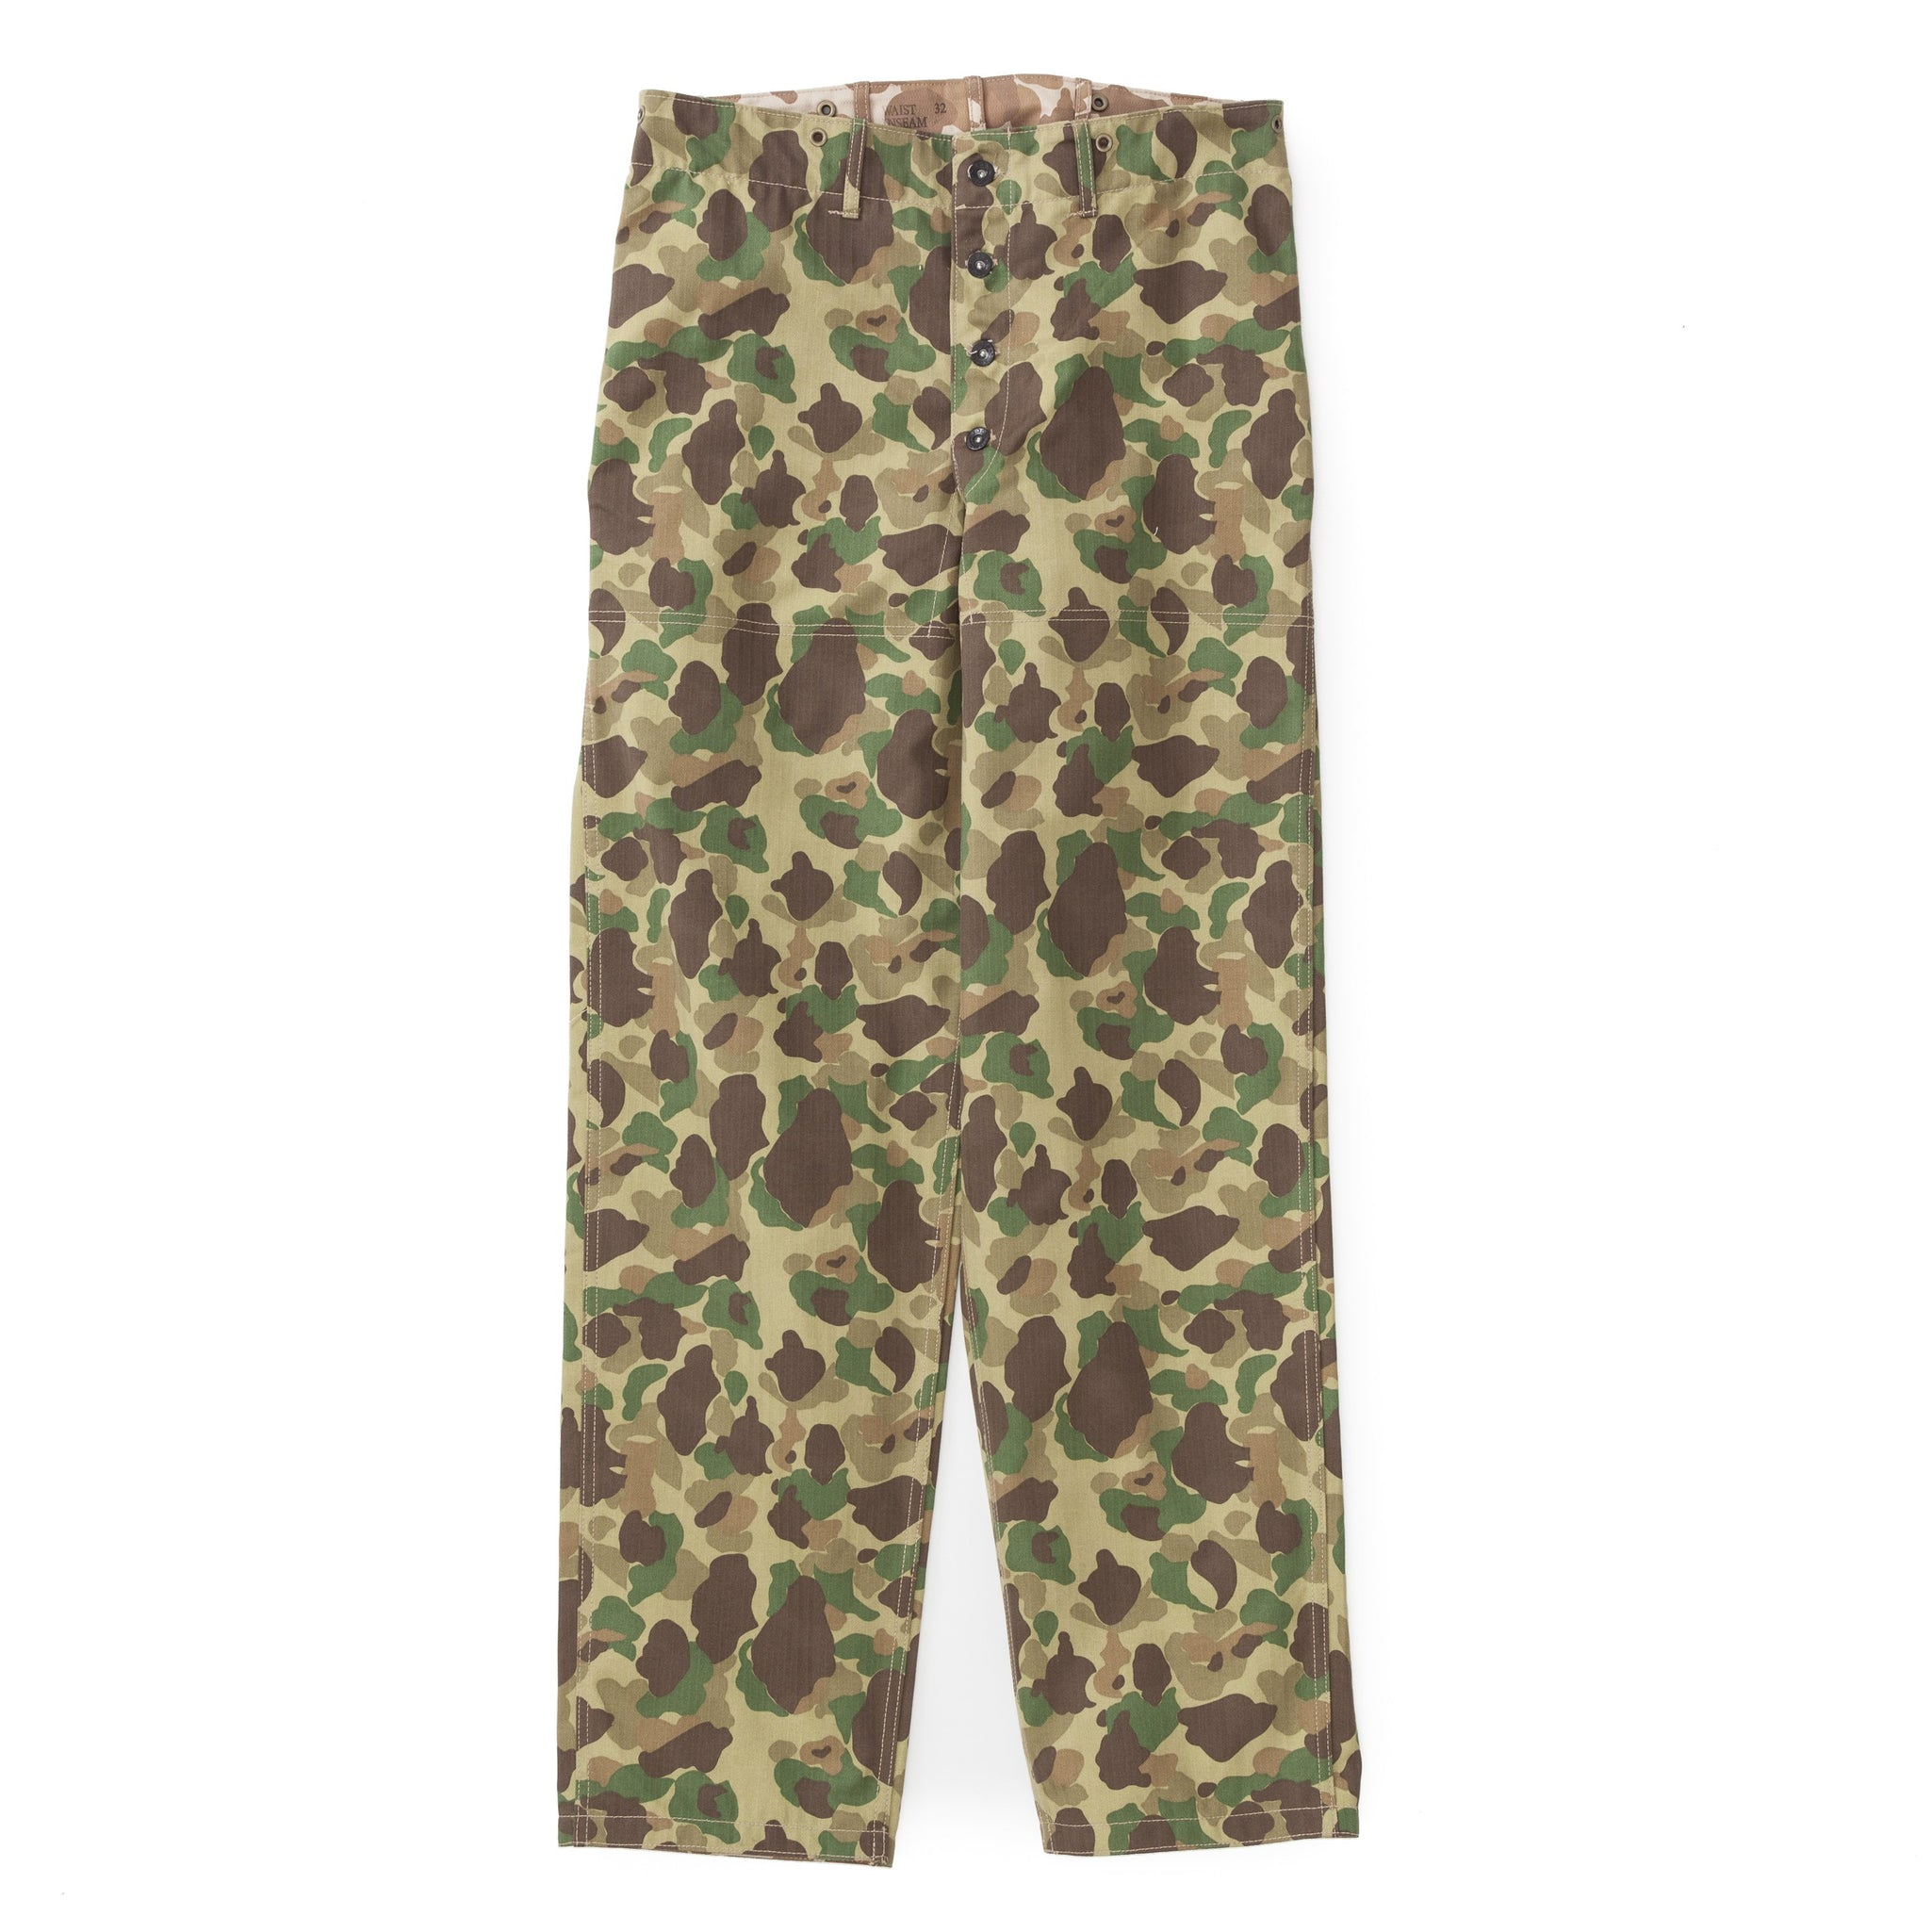 P-1944 Camouflage Trousers